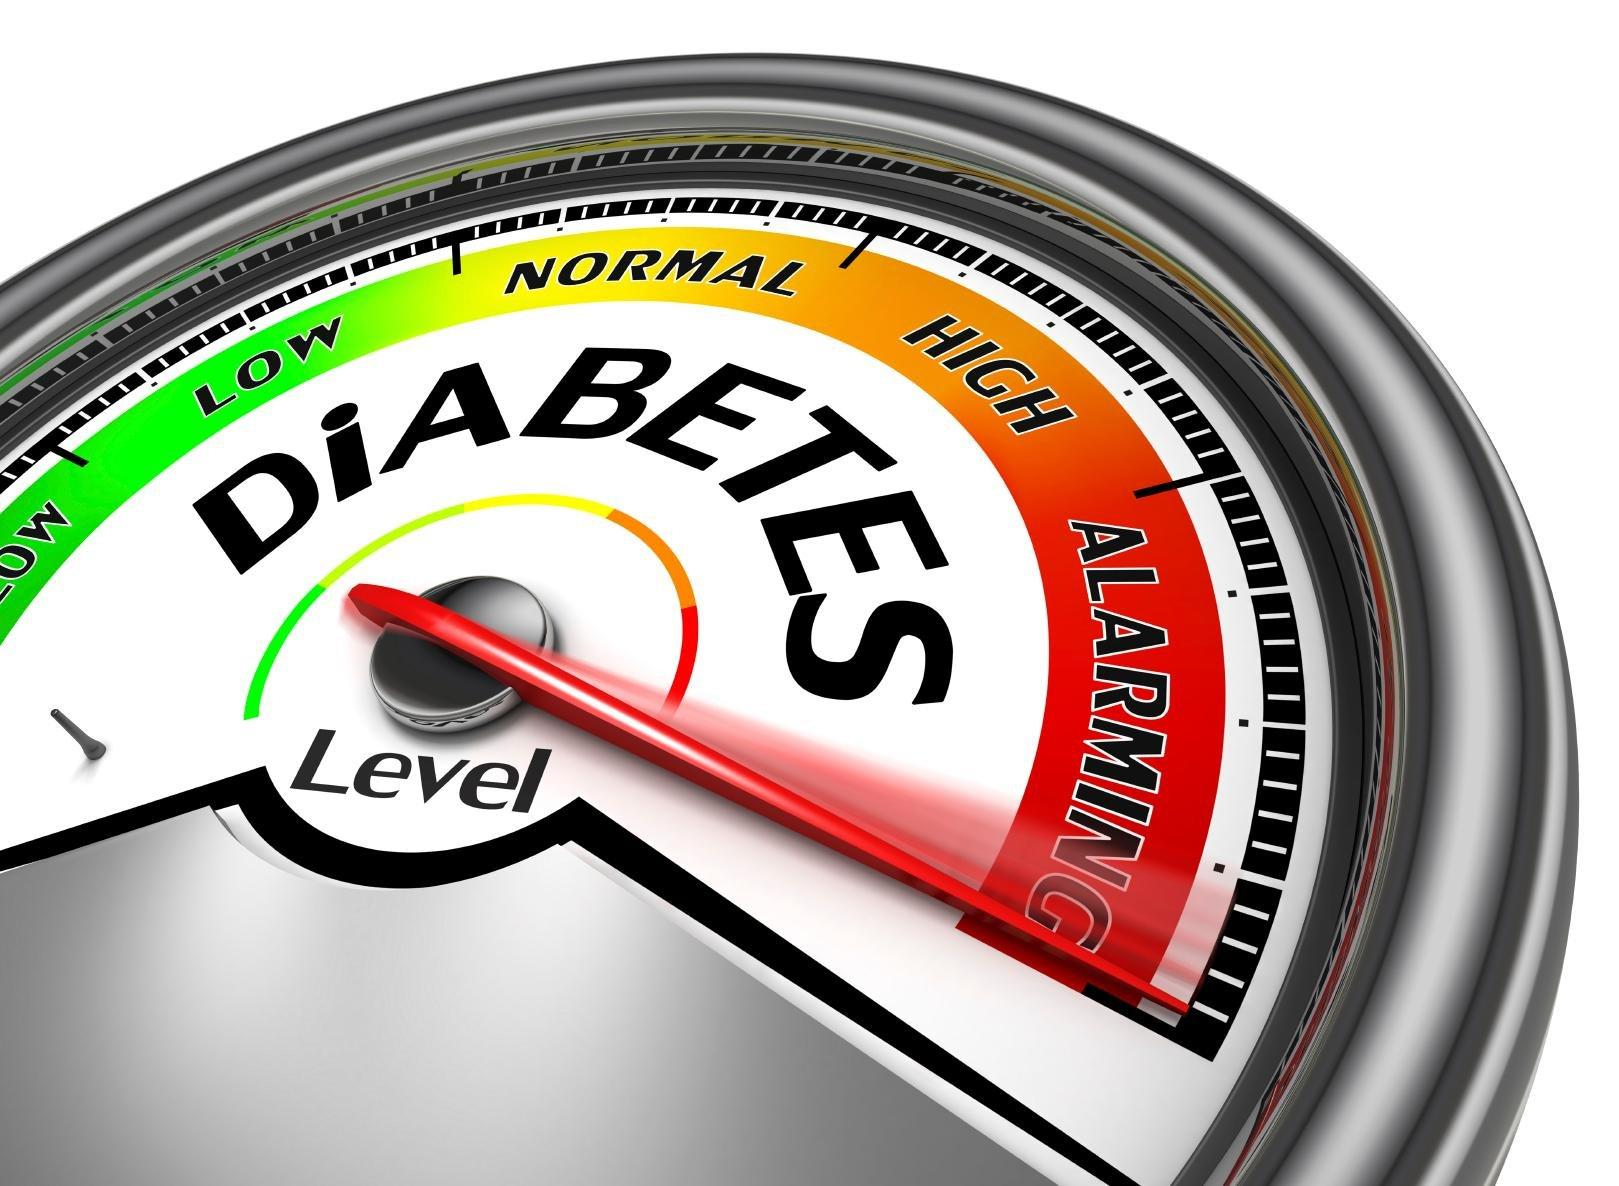 Tight Blood Sugar Control In Type 2 Diabetes Linked To Fewer Heart Attacks And Strokes